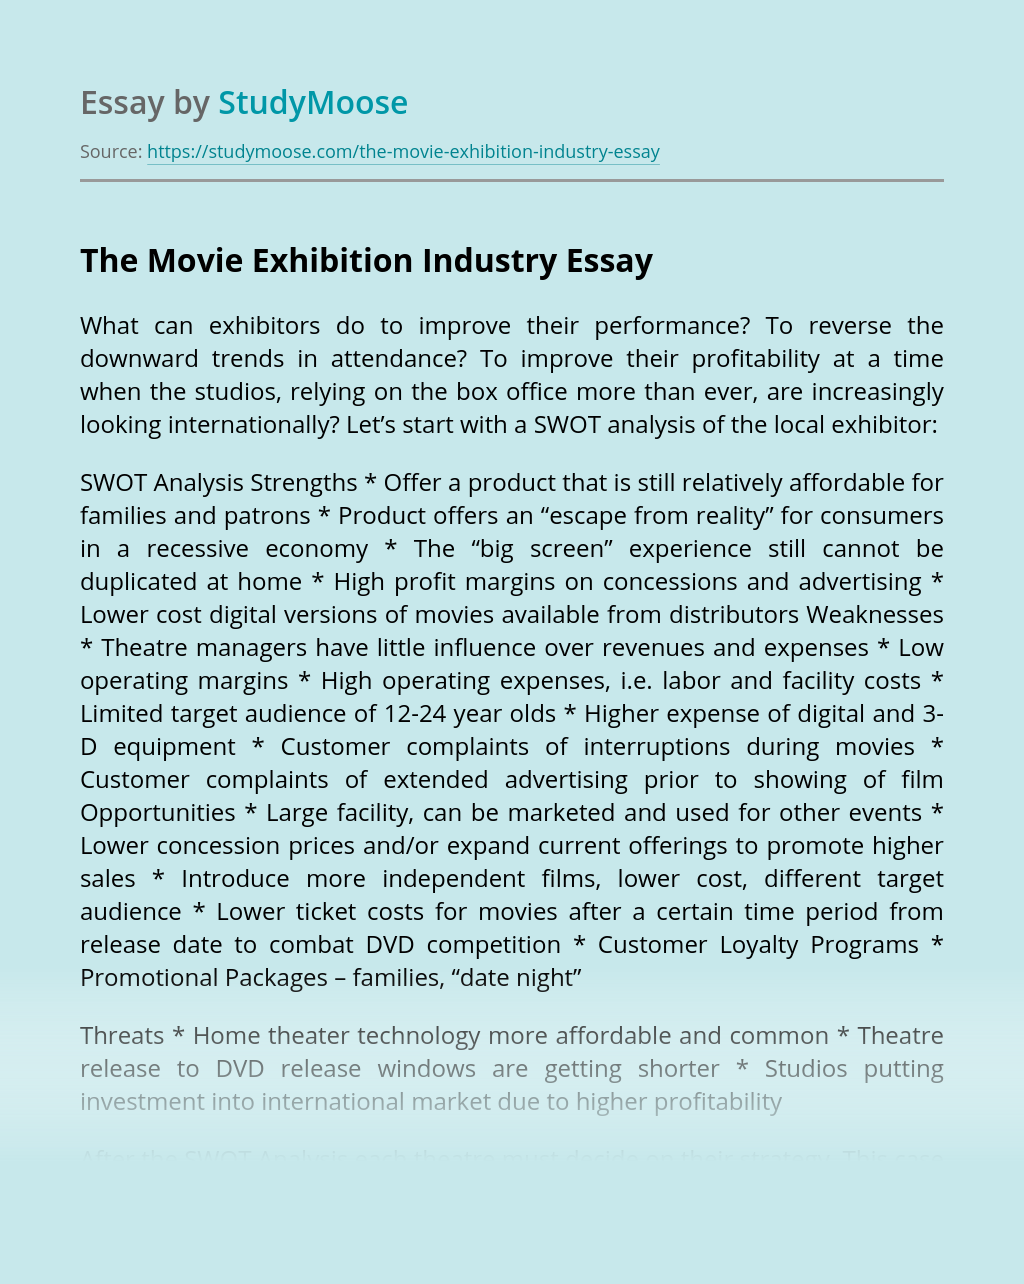 The Movie Exhibition Industry